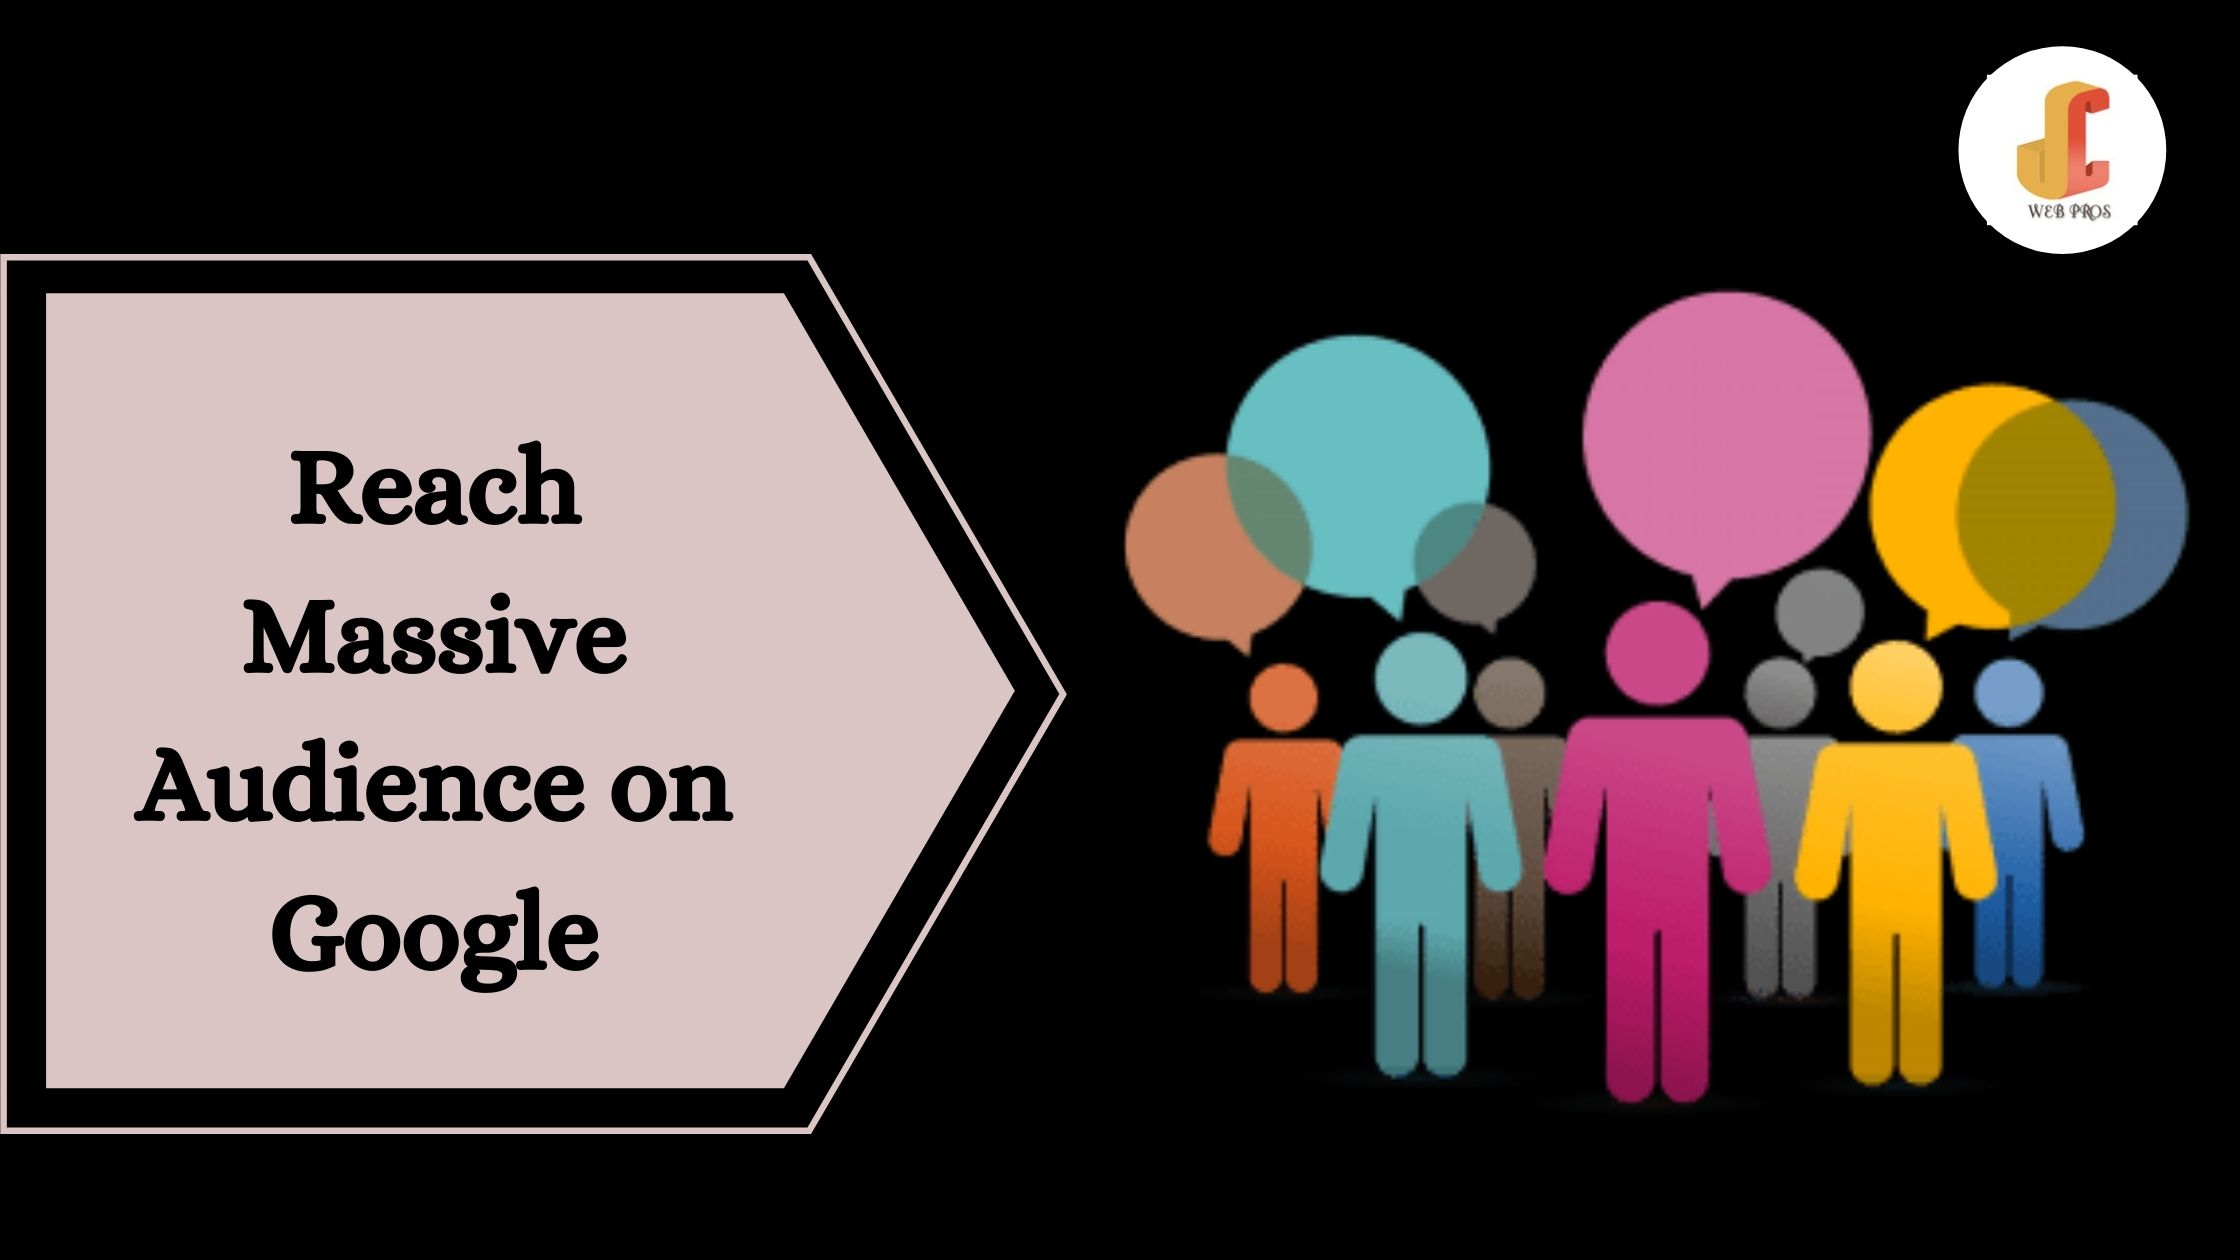 Reach Massive Audience on Google